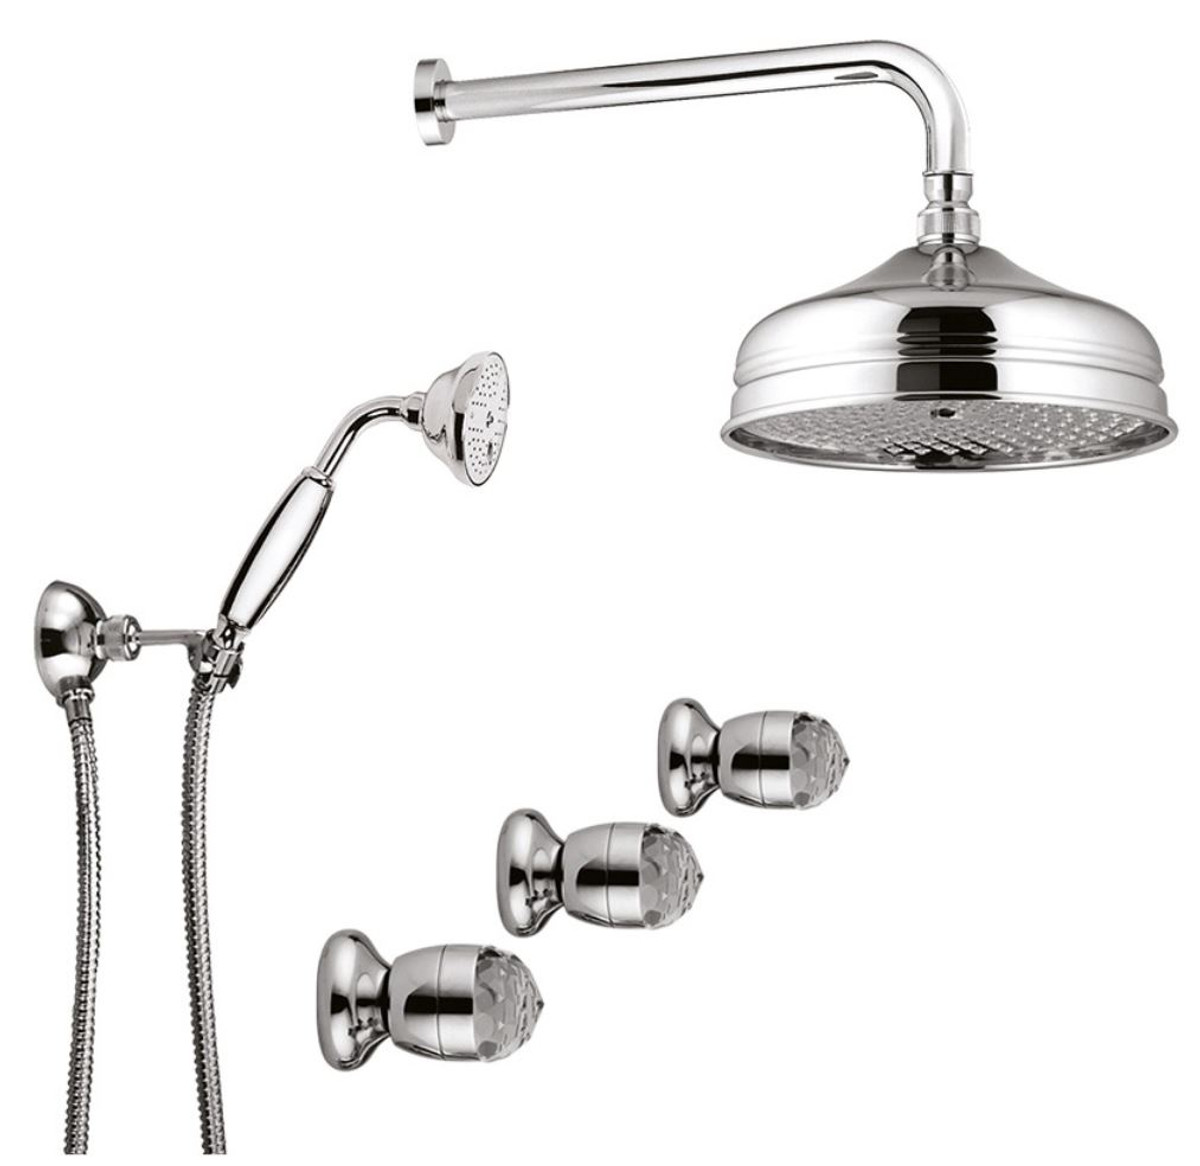 luxury bathroom faucets duplex shower set with swarovski crystal glass silver luxury shower set made in italy